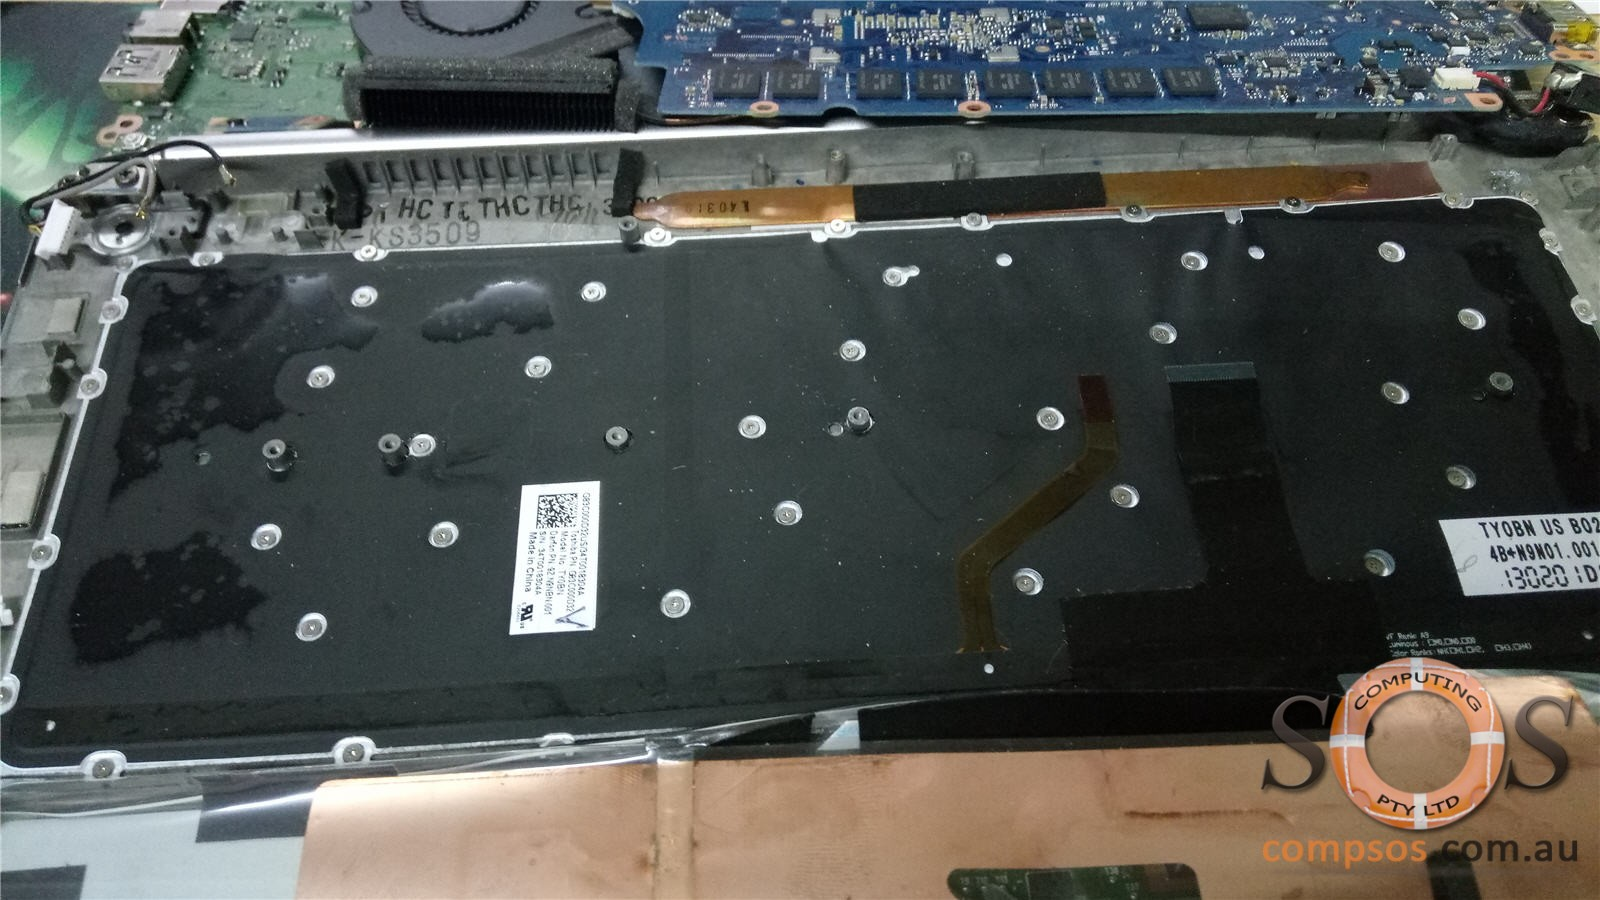 Toshiba Kirabook Touch showing more than 50 holes to secure the keyboard